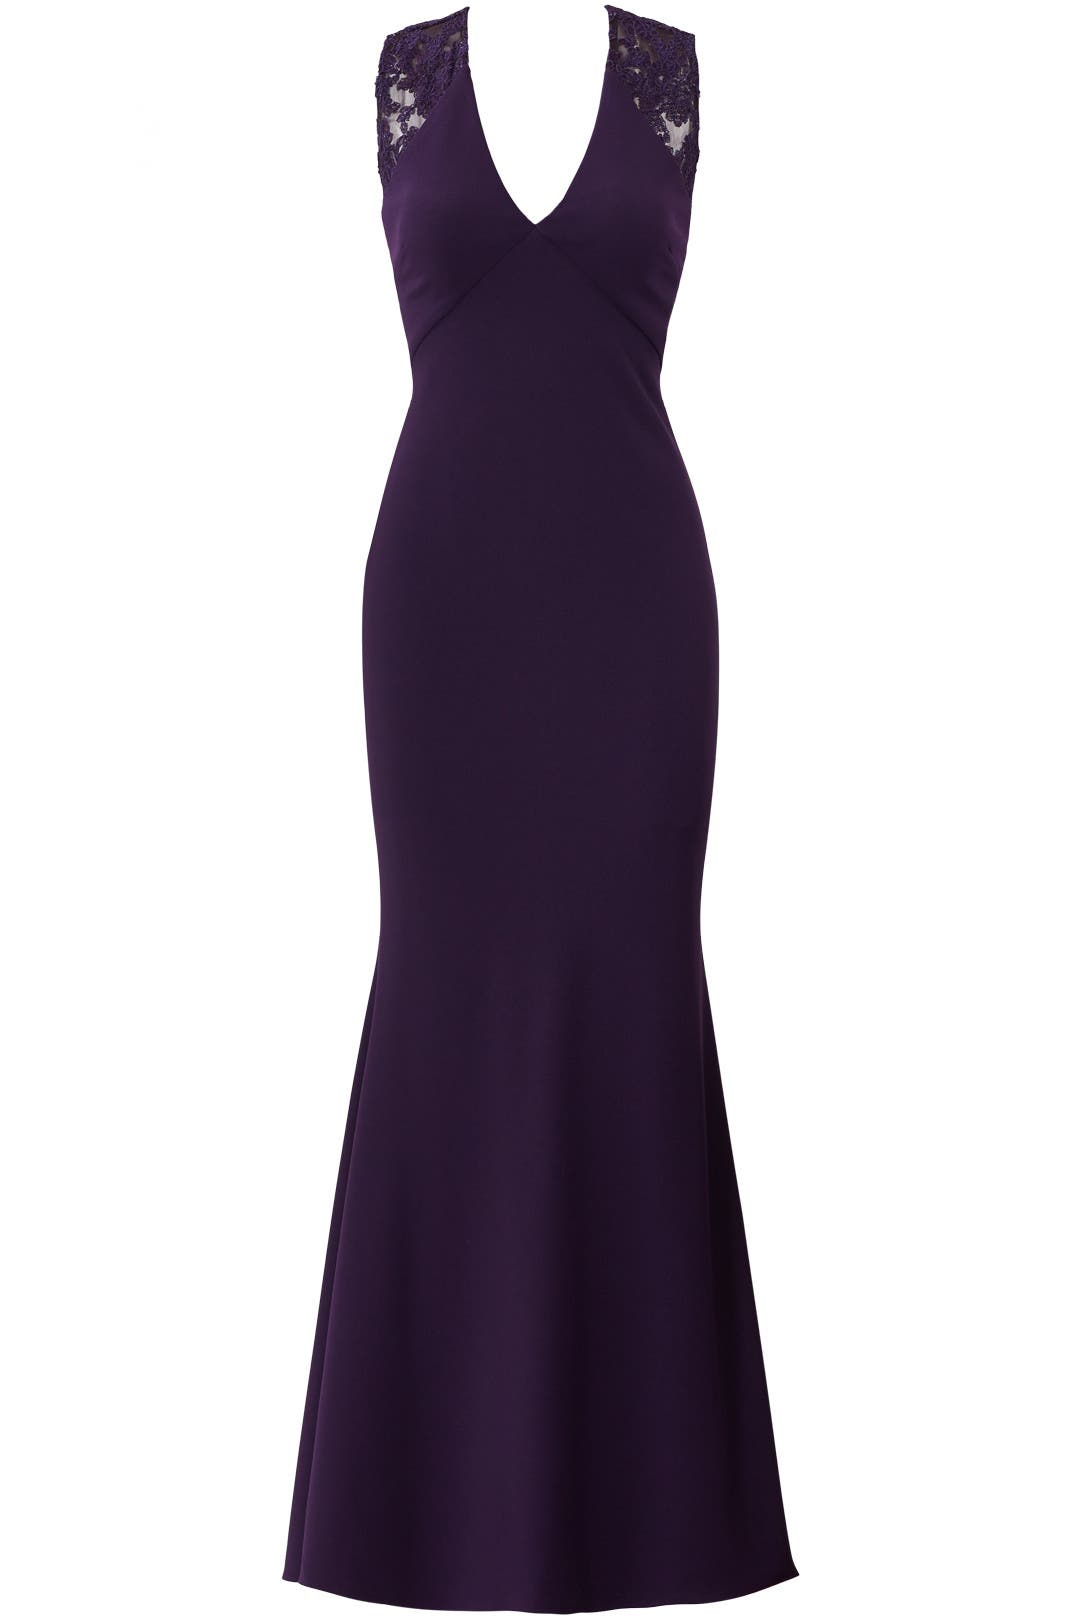 Eggplant Ottoman Gown by JS Collection for $70 | Rent the Runway